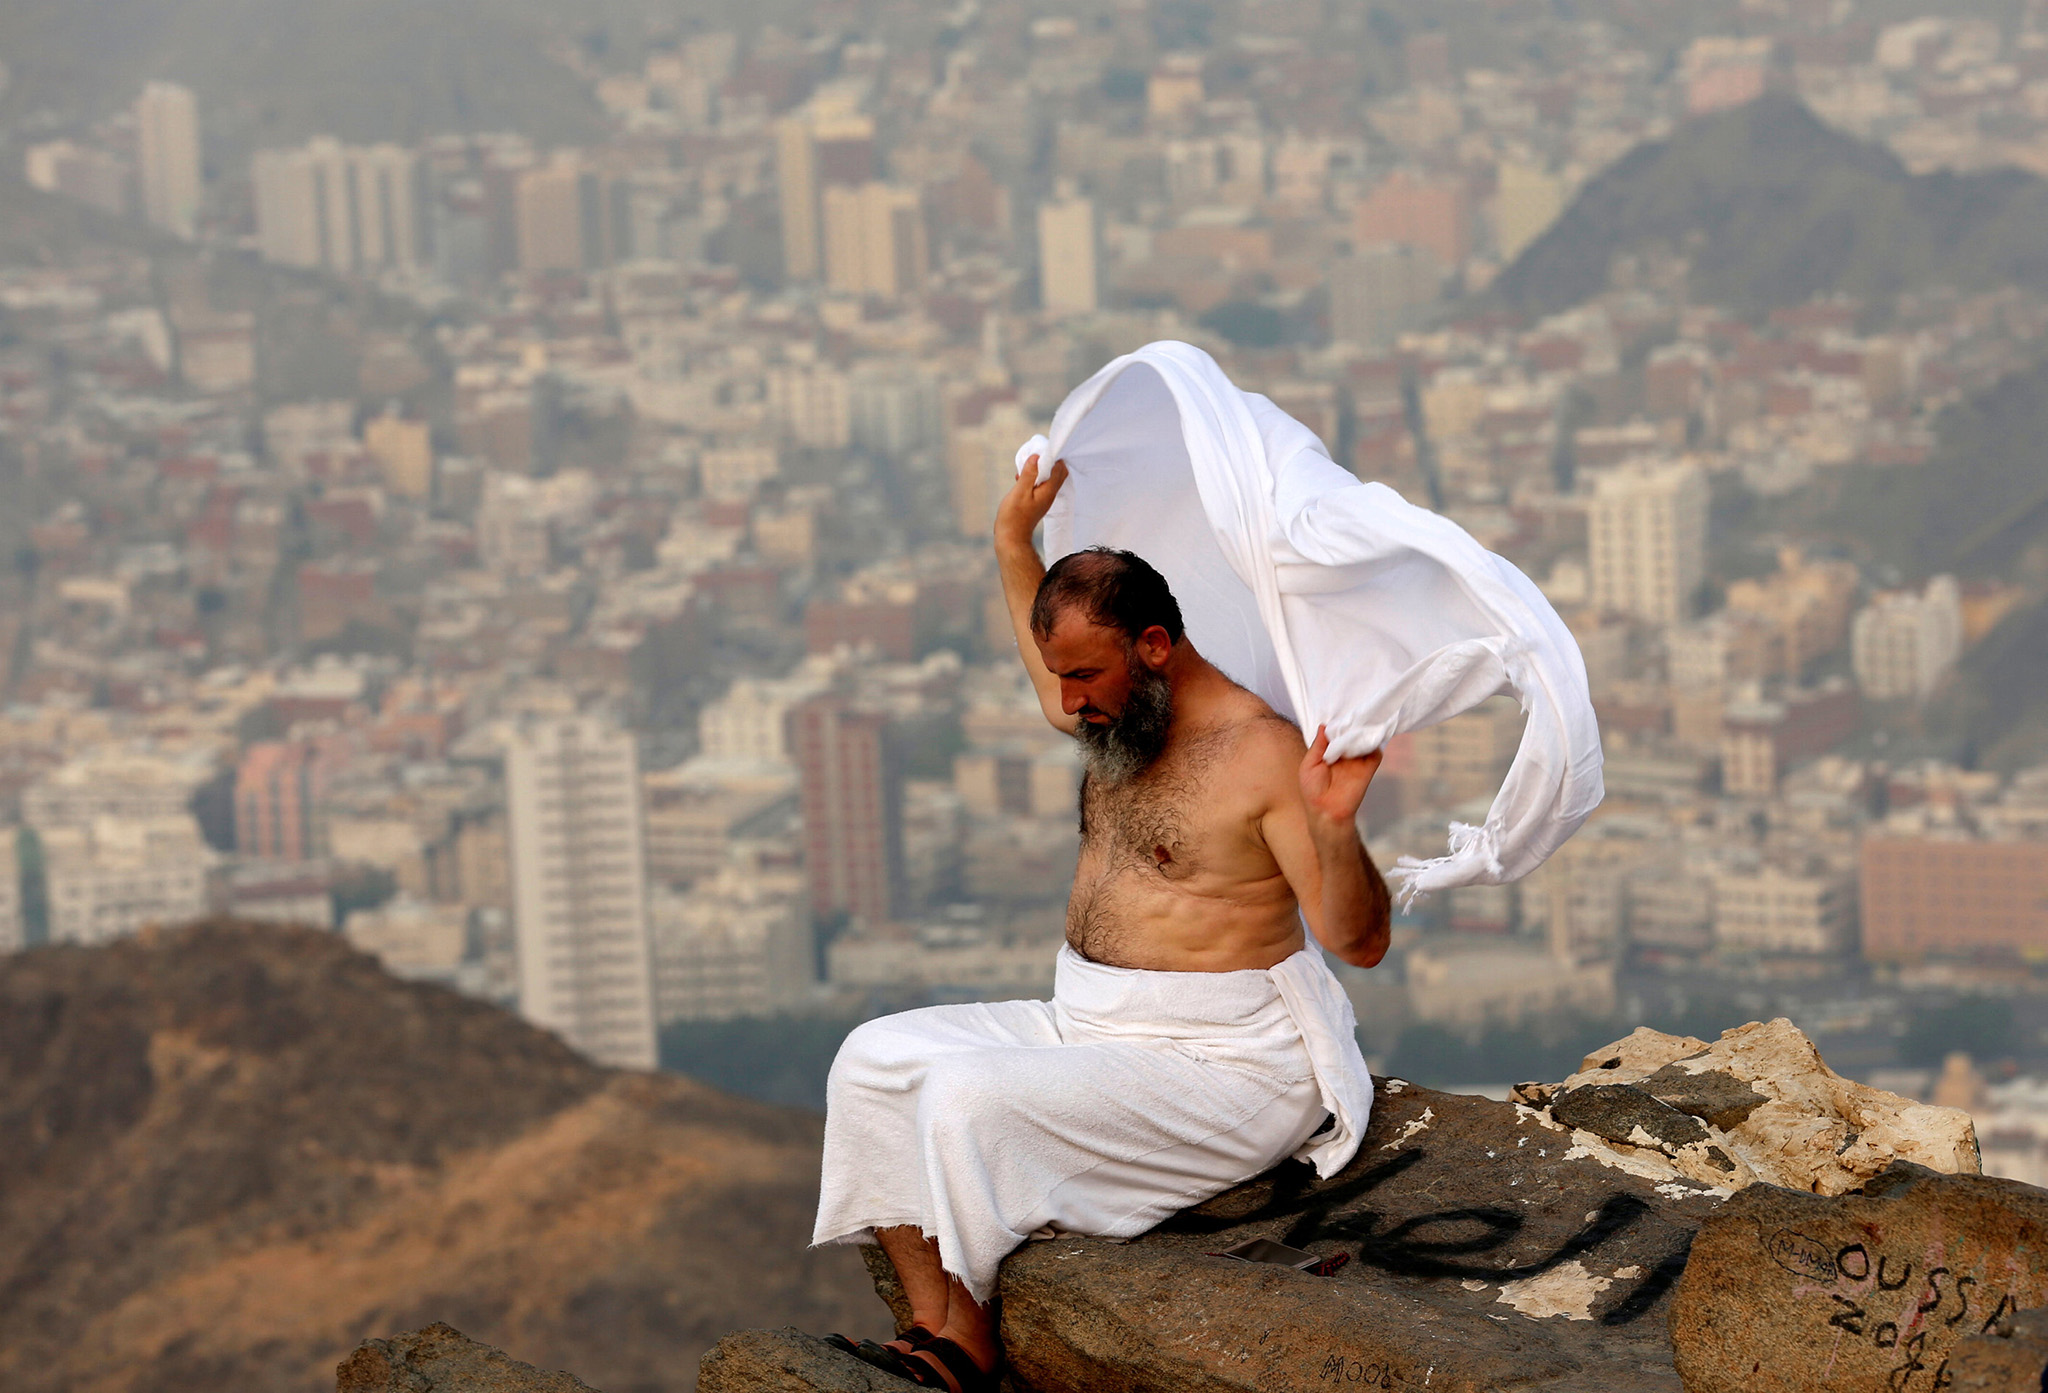 A Muslim pilgrim sits on the top of Mount Al-Noor, where Muslims believe Prophet Mohammad received the first words of the Koran through Gabriel in the Hera cave, ahead of the annual haj pilgrimage in the holy city of Mecca, Saudi Arabia September 7, 2016. REUTERS/Ahmed Jadallah